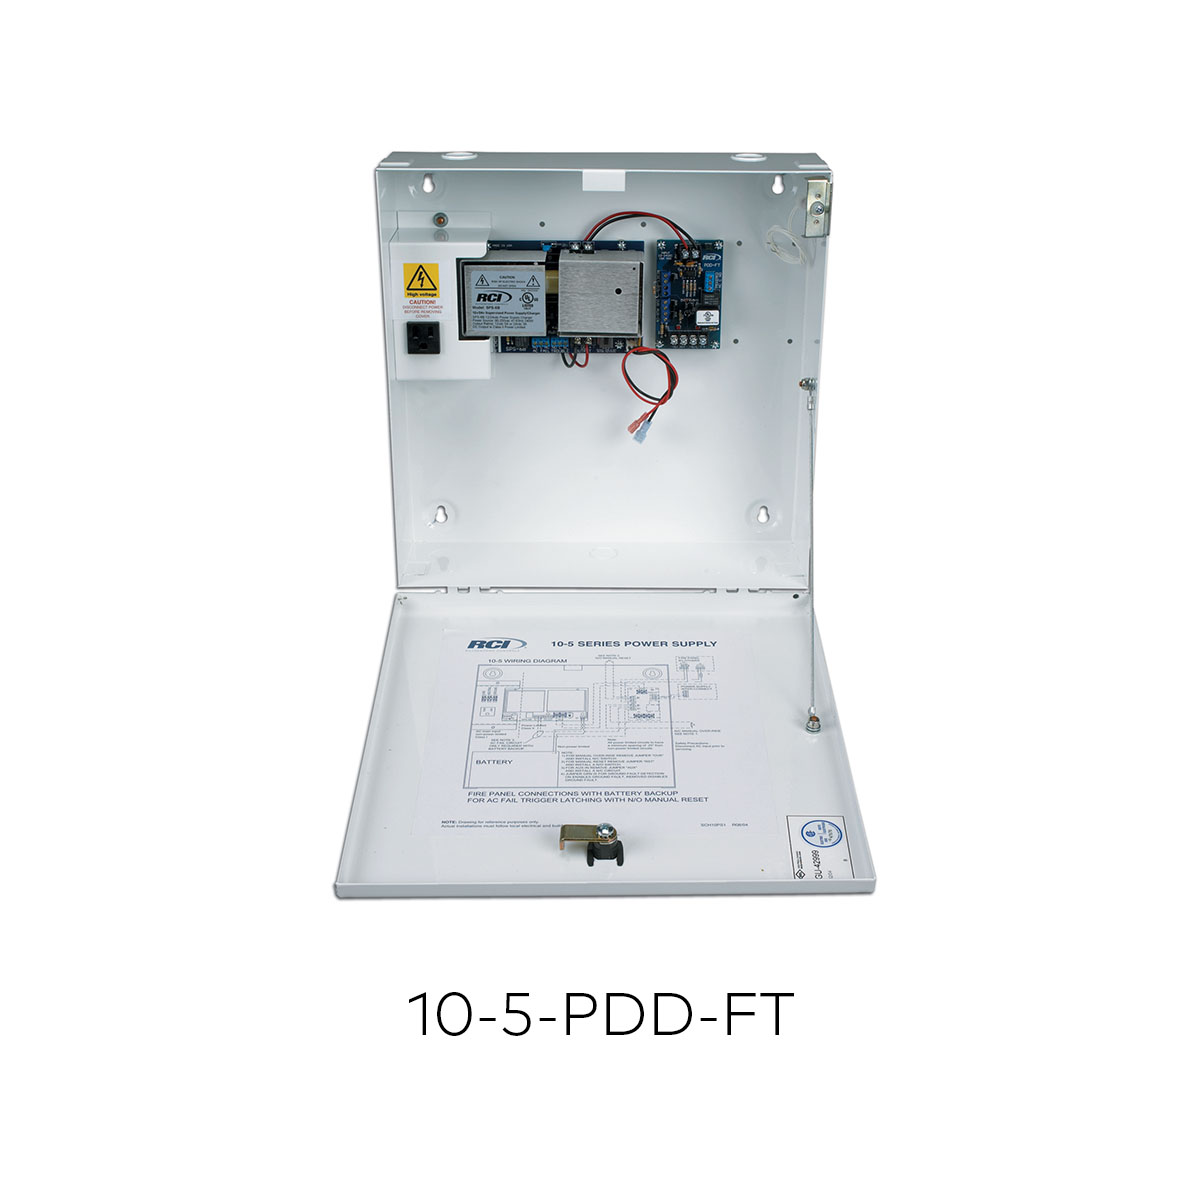 10 5 Pdd Ft Power Supplies Rci Dormakaba Innovative Circuit Ict120124a Comm Series 120vac 12vdc 4 Amp Ead